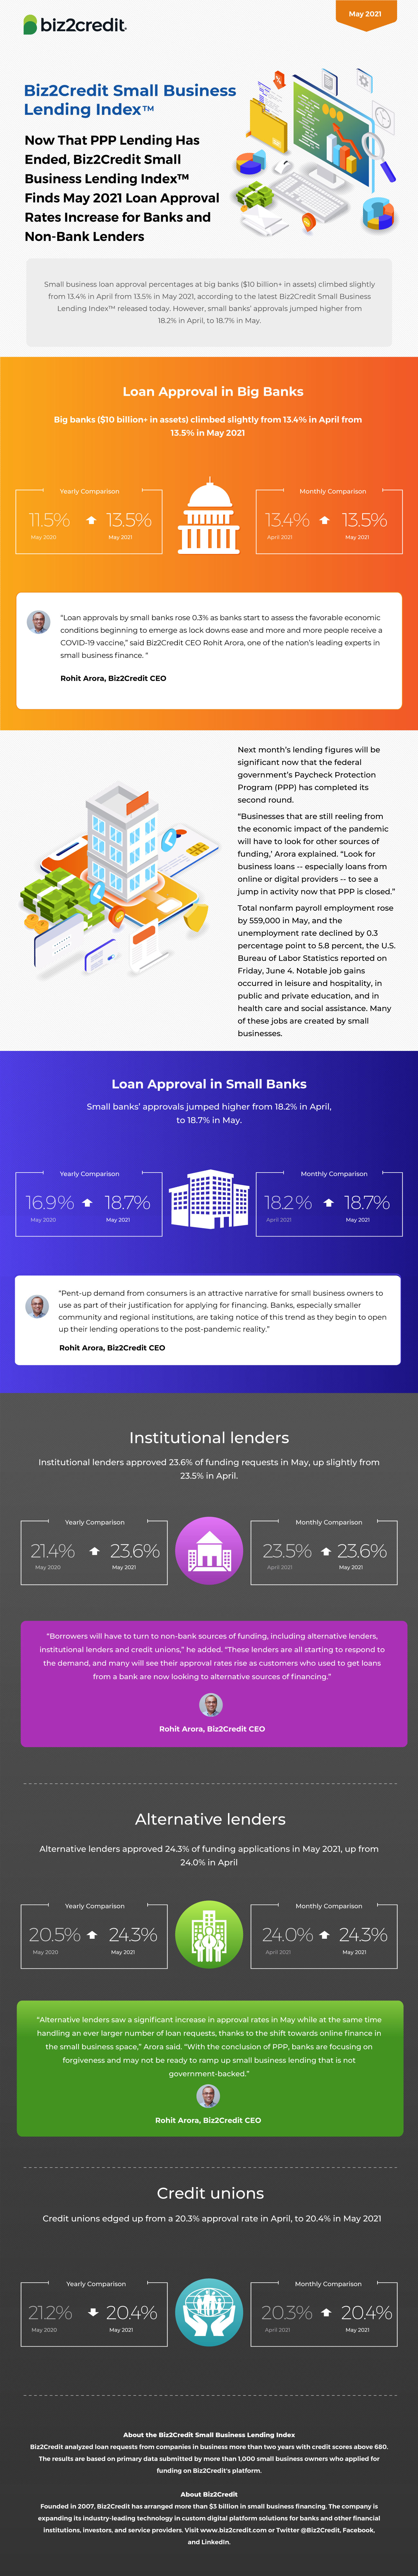 May 2021 Lending Index Infographic